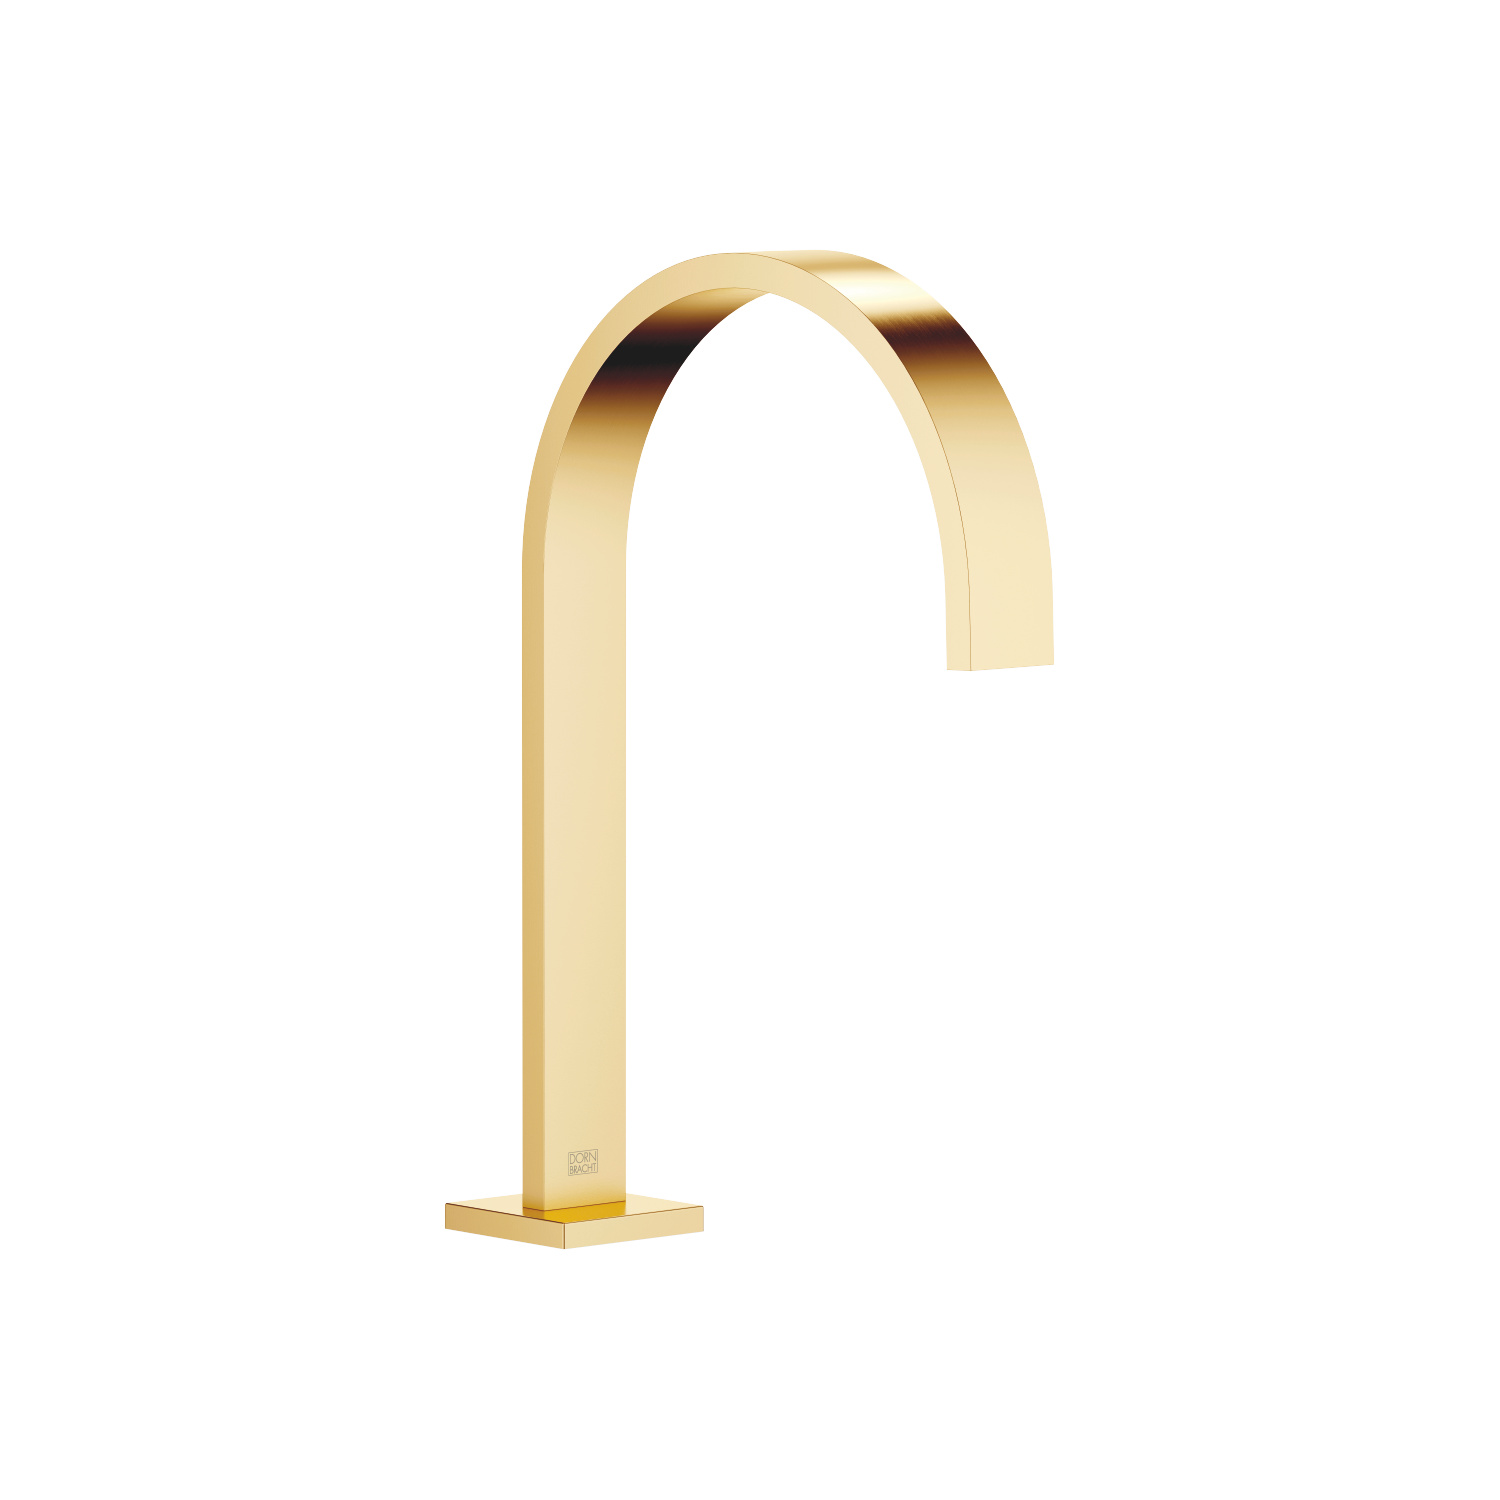 eSET Touchfree Lavatory faucet without drain without temperature adjustment - Brushed Durabrass